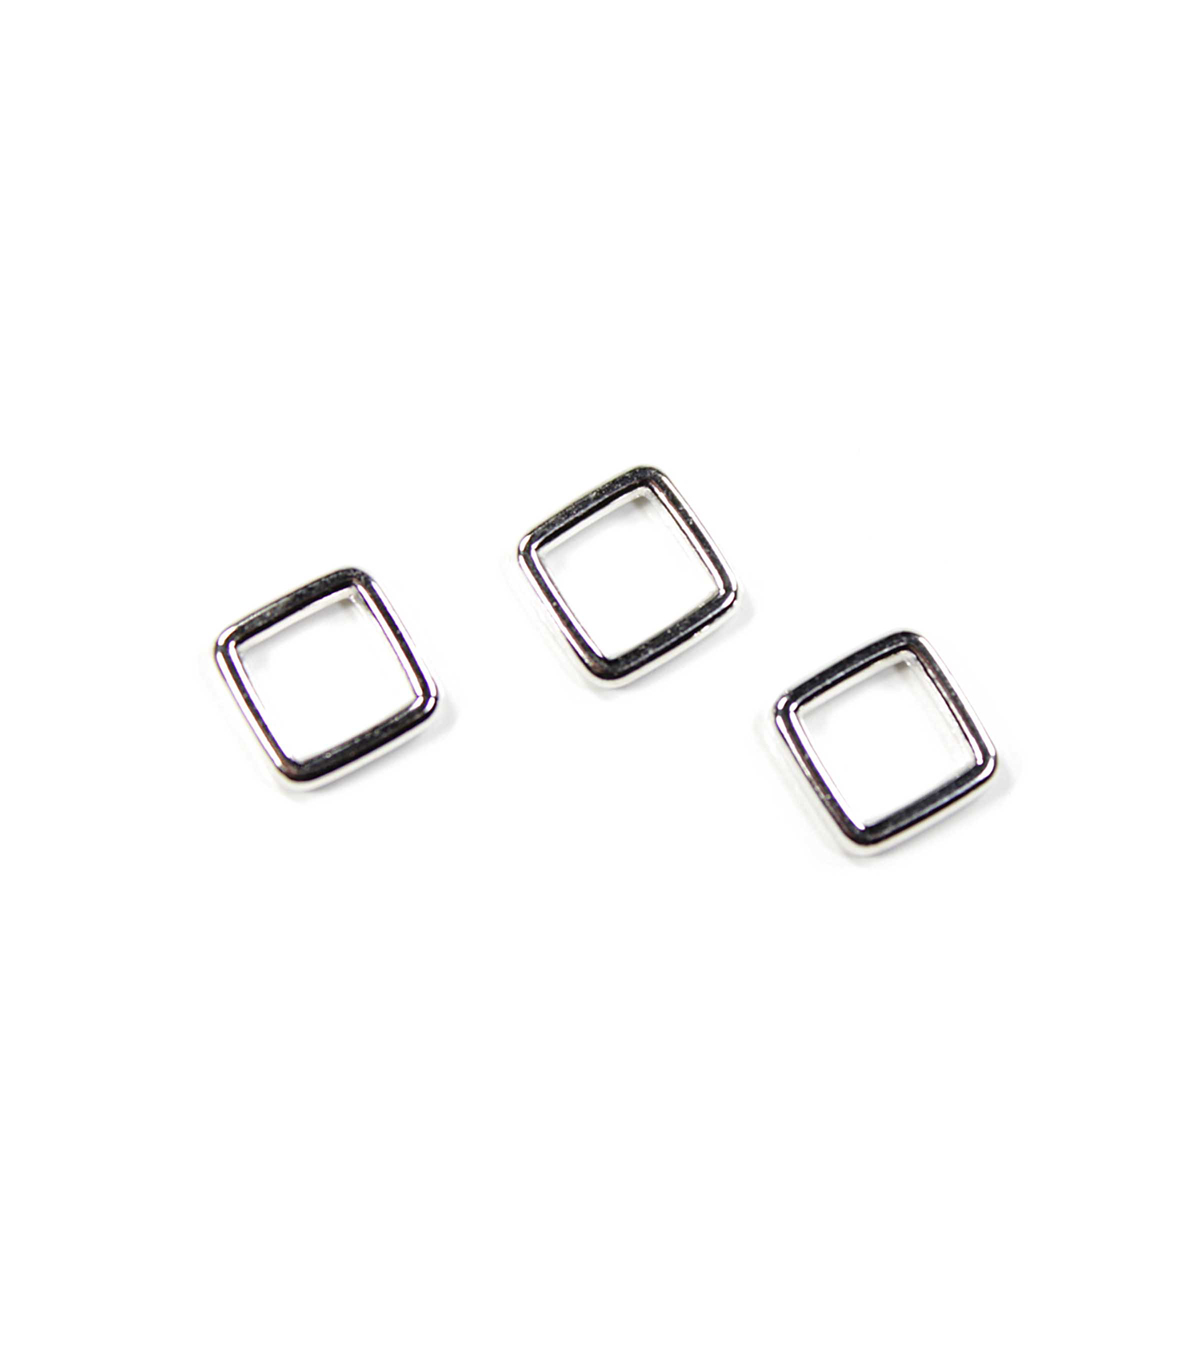 Blue Moon Findings Connector Ring Metal Square 8mm Silver